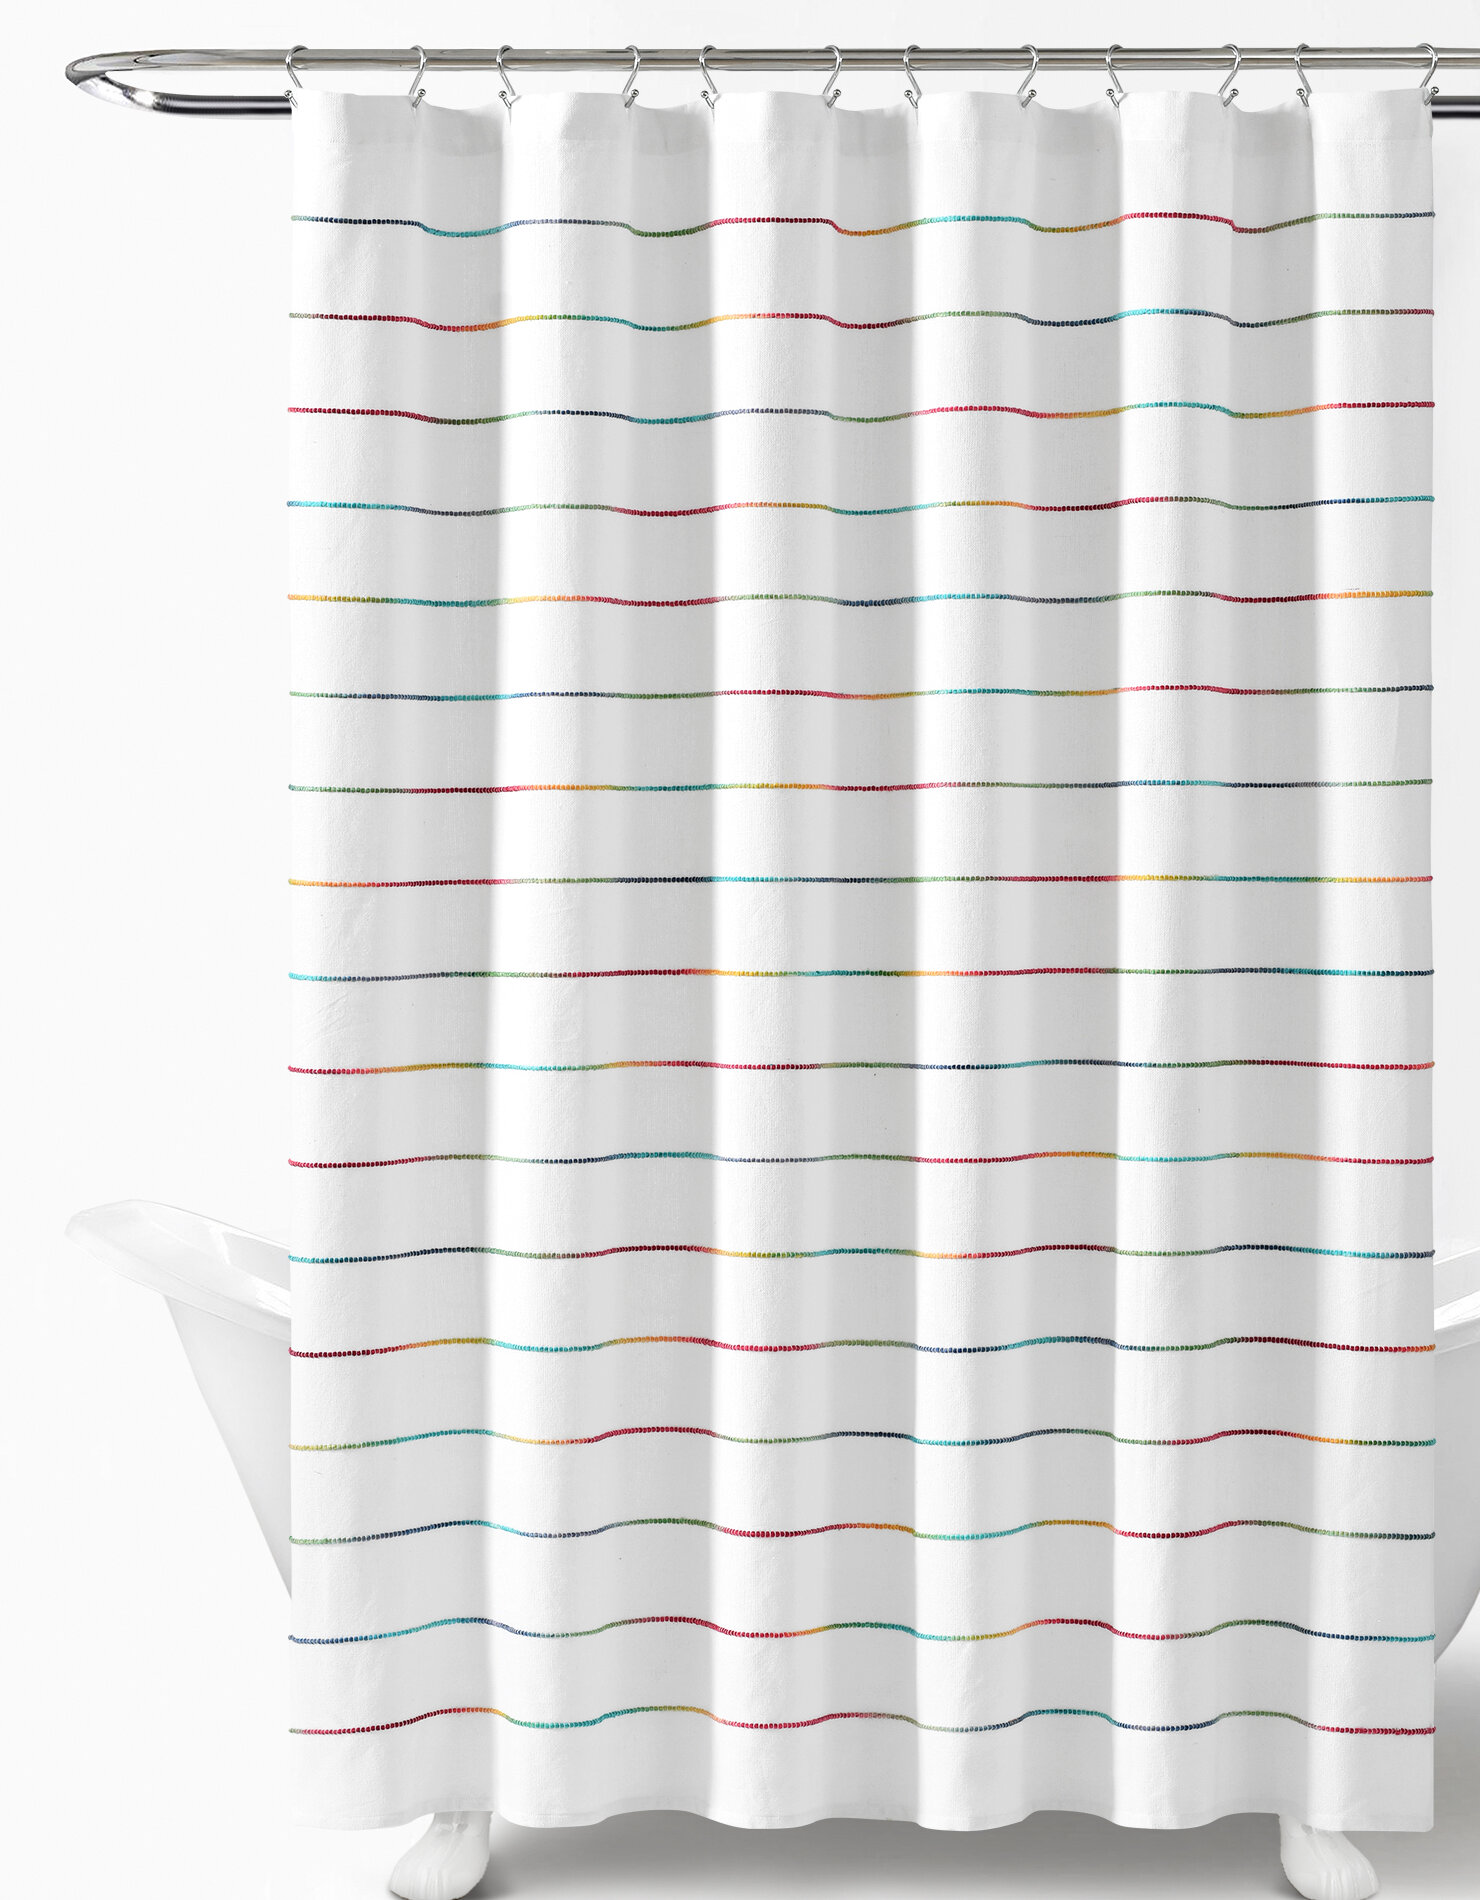 Home Garden 1pc Shower Curtain Gradient Color Strip Bath Curtain With Hooks Waterproof New Rudisbakery Com